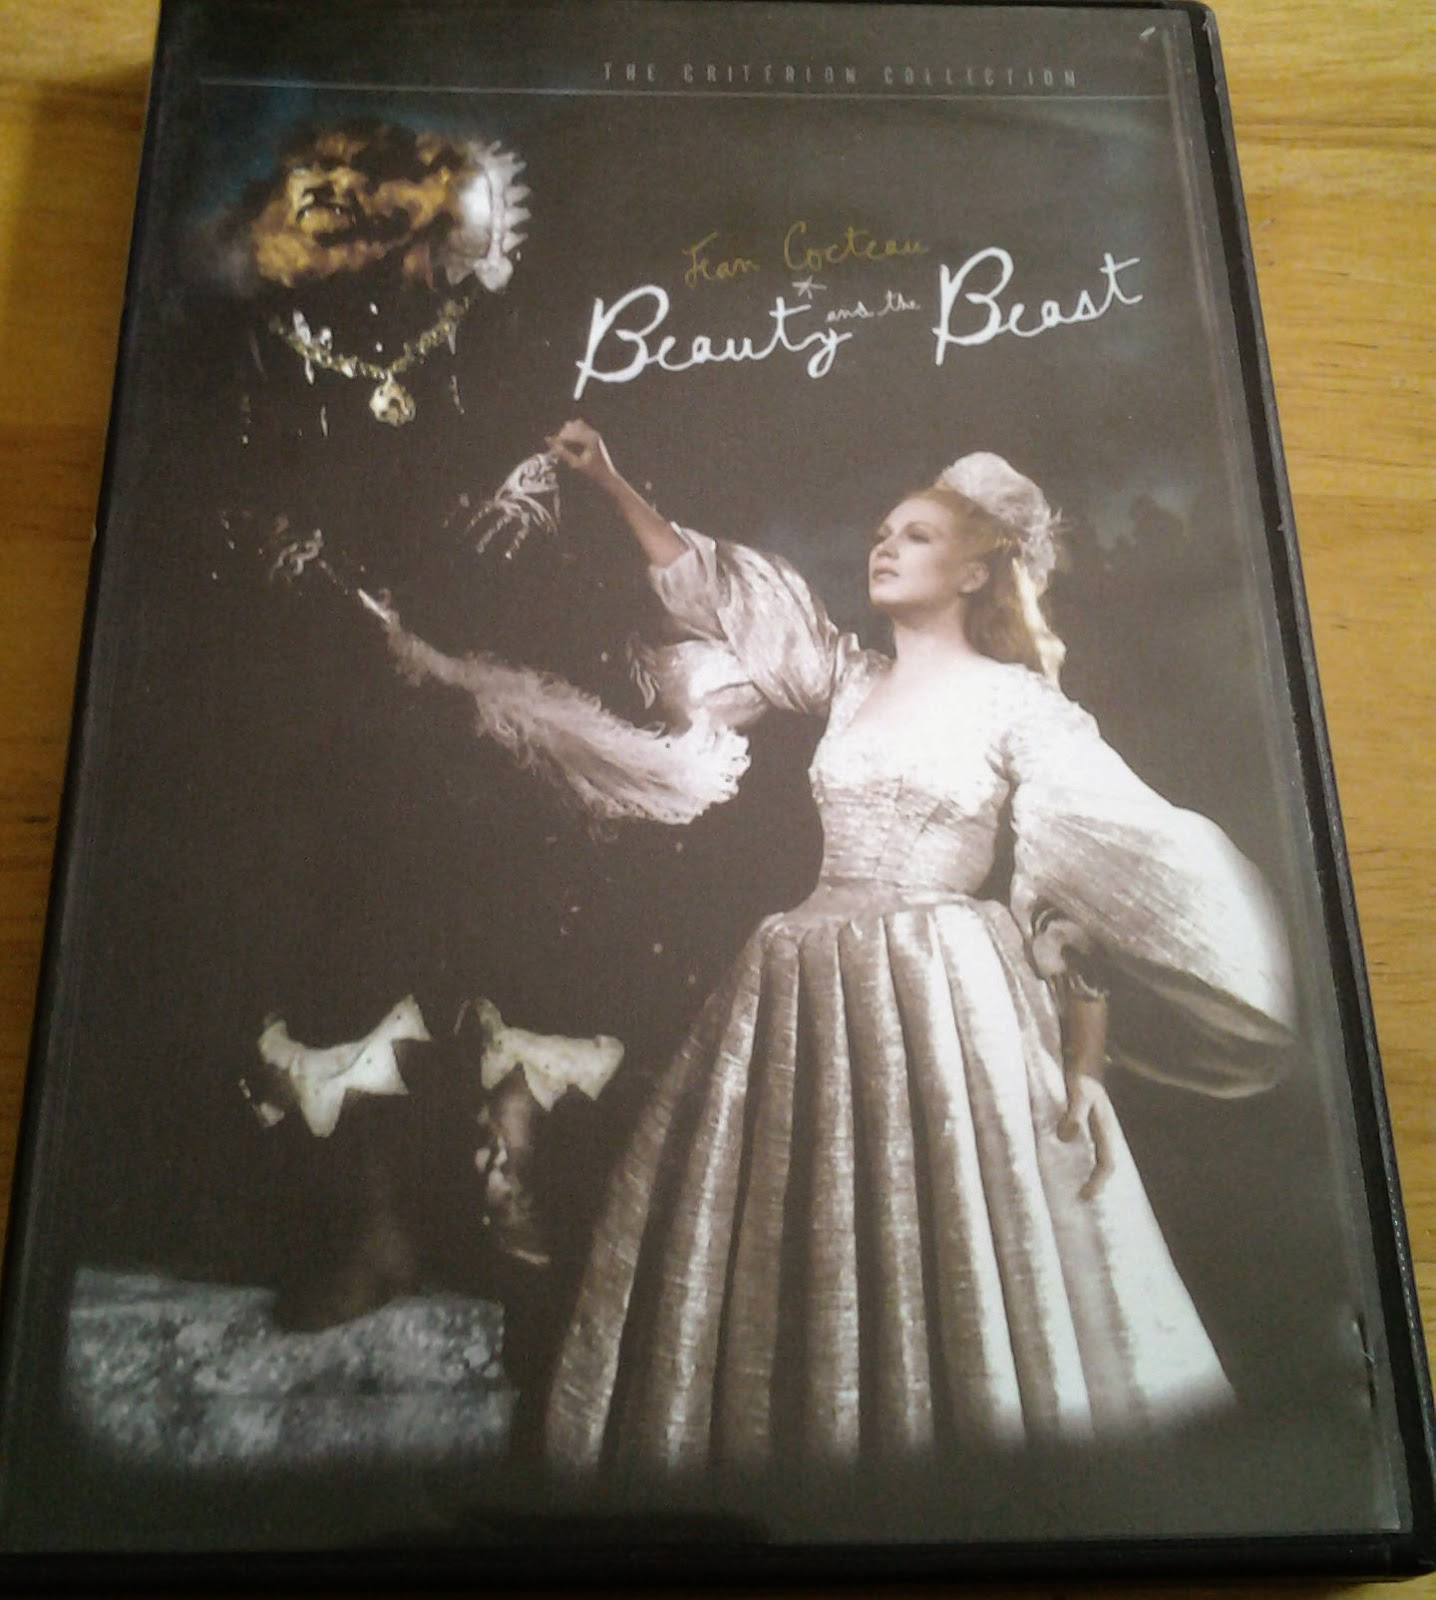 DVD Cover of Jean Cocteau's Beauty and the Beast